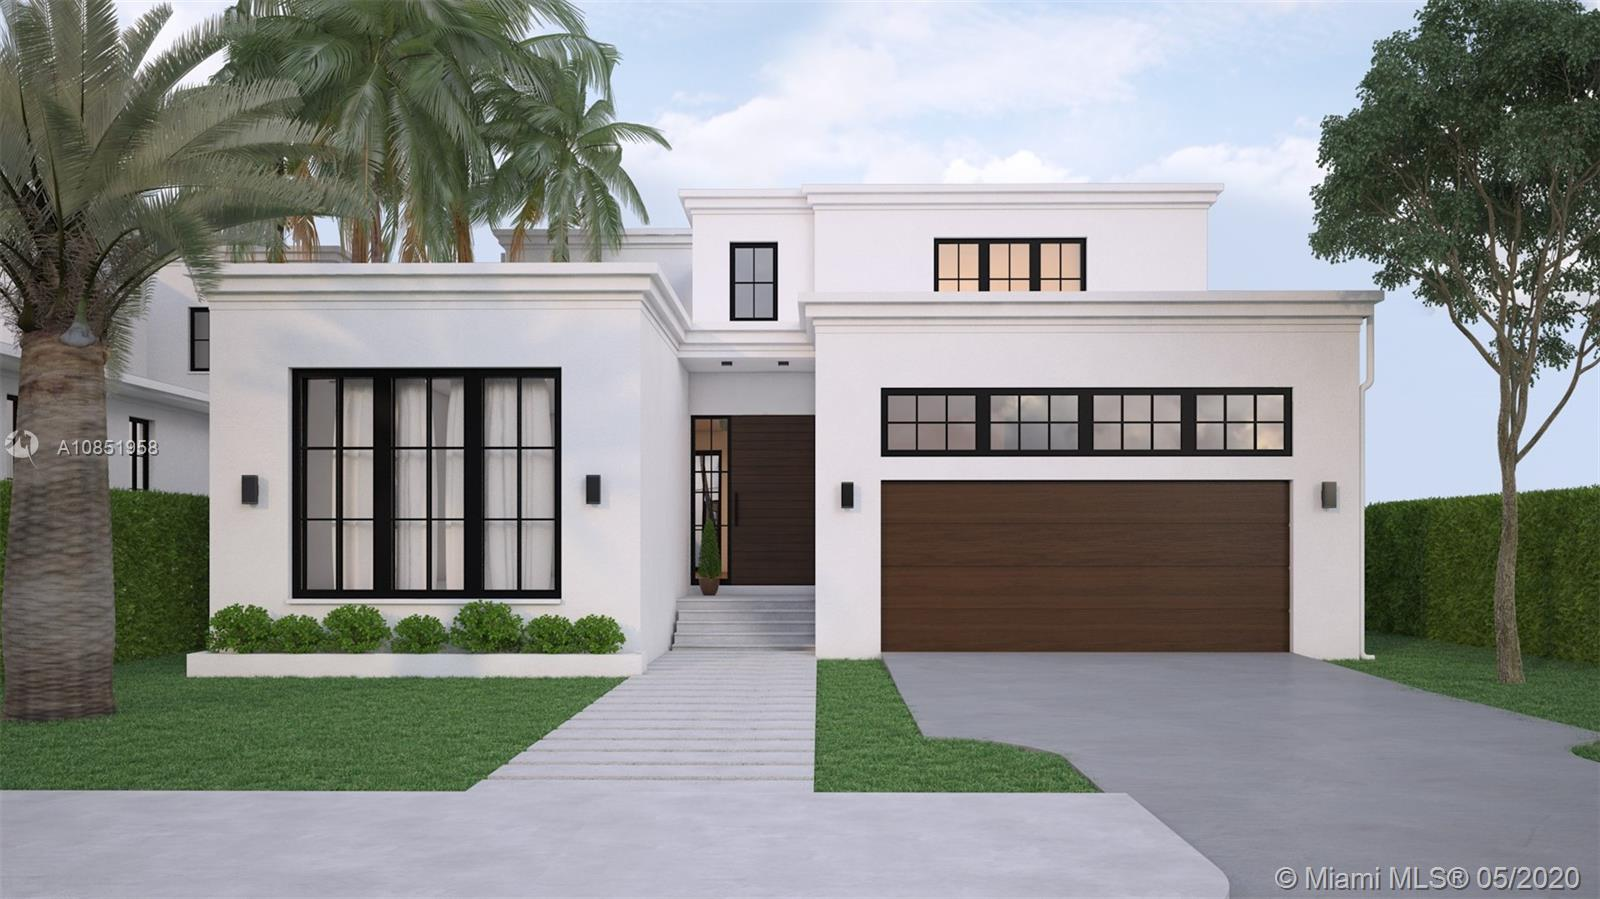 BRAND NEW 2020 CONSTRUCTION. Modern waterfront luxury home in beautiful gated Belle Meade. New seawall & dock, seconds to open bay w/ no bridges. Enjoy 5,283sf with 5br/4.5ba. Spacious light-filled living/kitchen/dining areas open to large covered lanai, summer kitchen, exterior courtyard, salt chlorinated pool w/ spa. 10.5' finished ceilings. Huge master suite features private covered balcony, massive 16x10 custom closet. True chef's kitchen includes full Subzero/Wolf appliances, huge island w/ built in table & plenty of storage in custom MIACUCINA cabinetry. Top quality impact windows/doors throughout. Permanent generator. Fully concrete roof. Attached 2 car garage with room for lift. A+ location, minutes from Miami Beach, Design District, Wynwood, Downtown & more. Delivery Summer 2020.